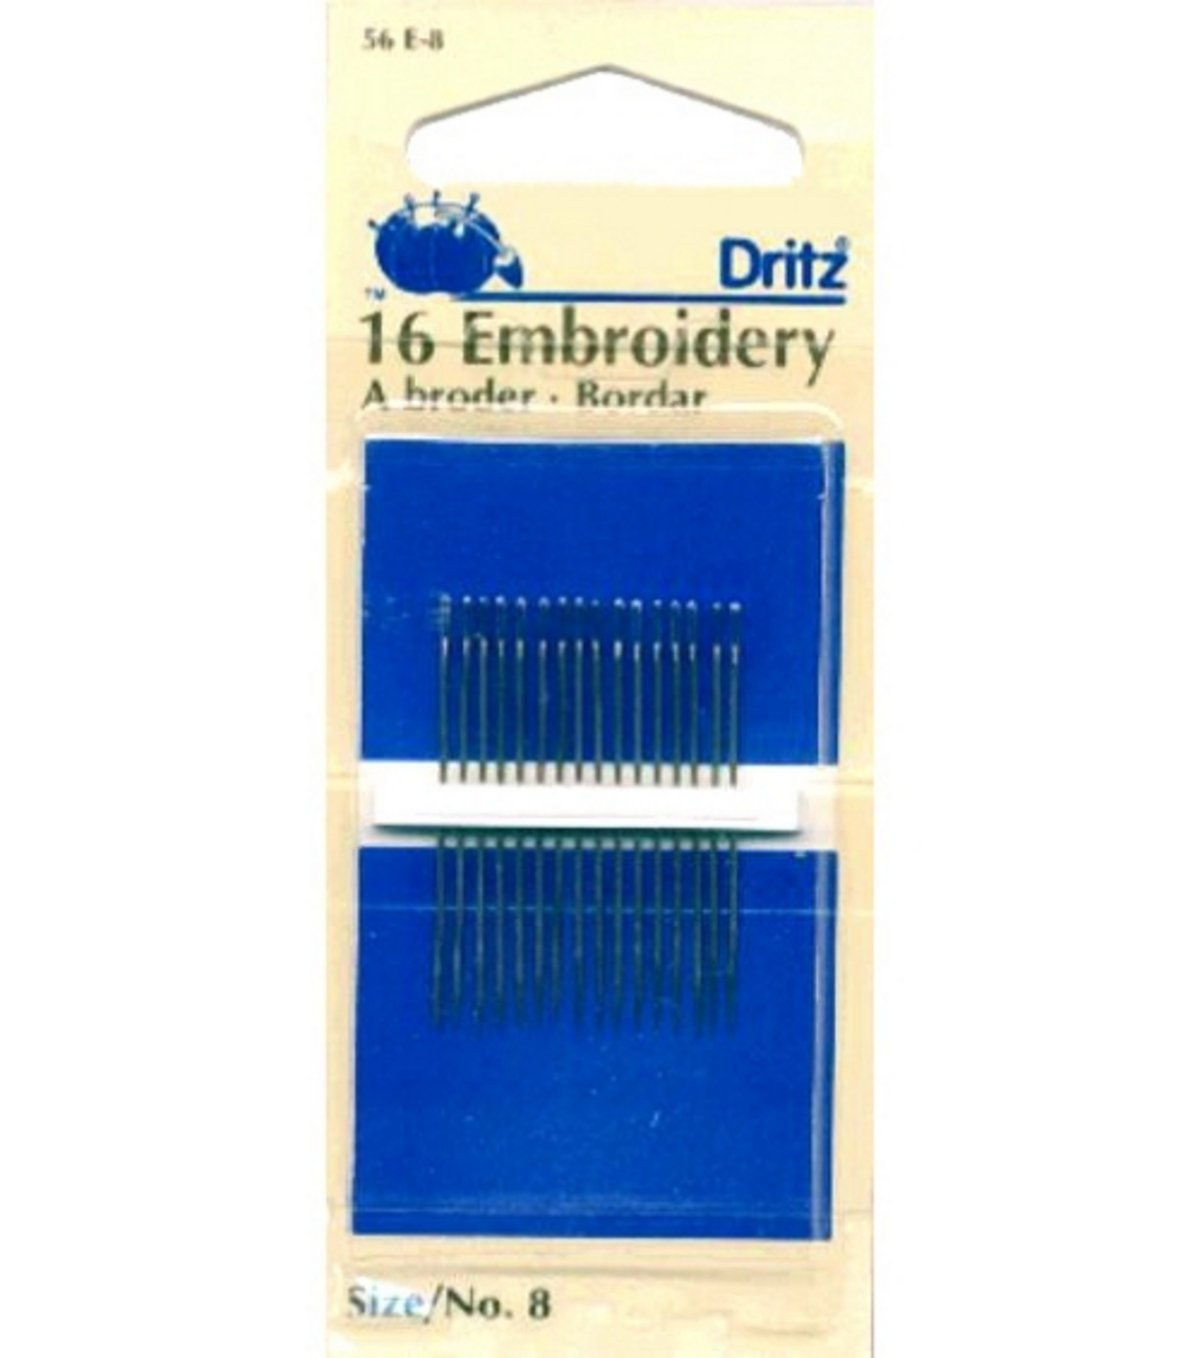 Dritz(R) Embroidery Hand Needles-Size 8 16/Pkg 27100283